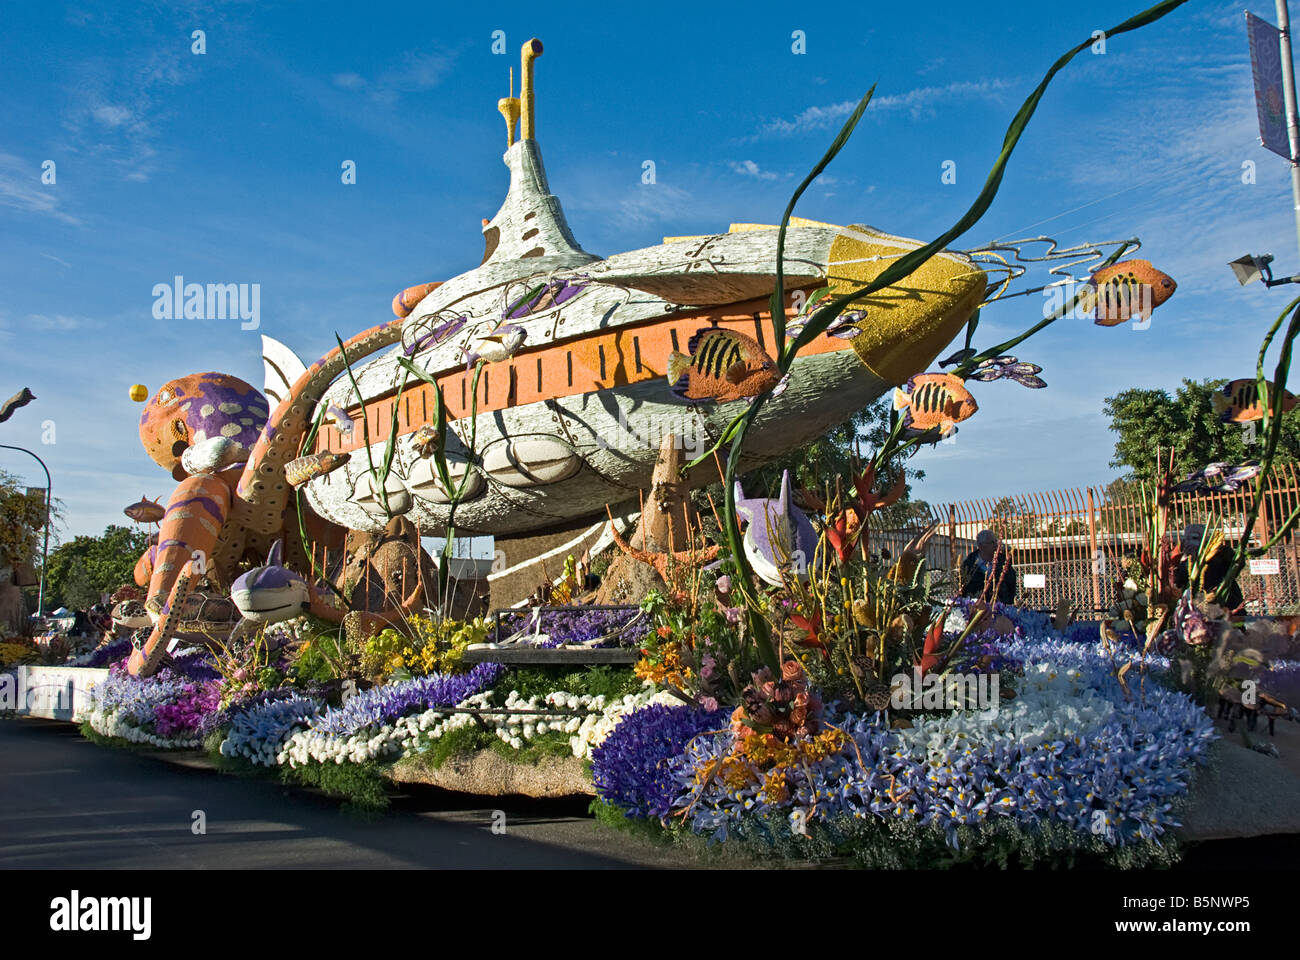 Long Beach Ca Rose Parade Float Decorated Mixed Flowerspassport